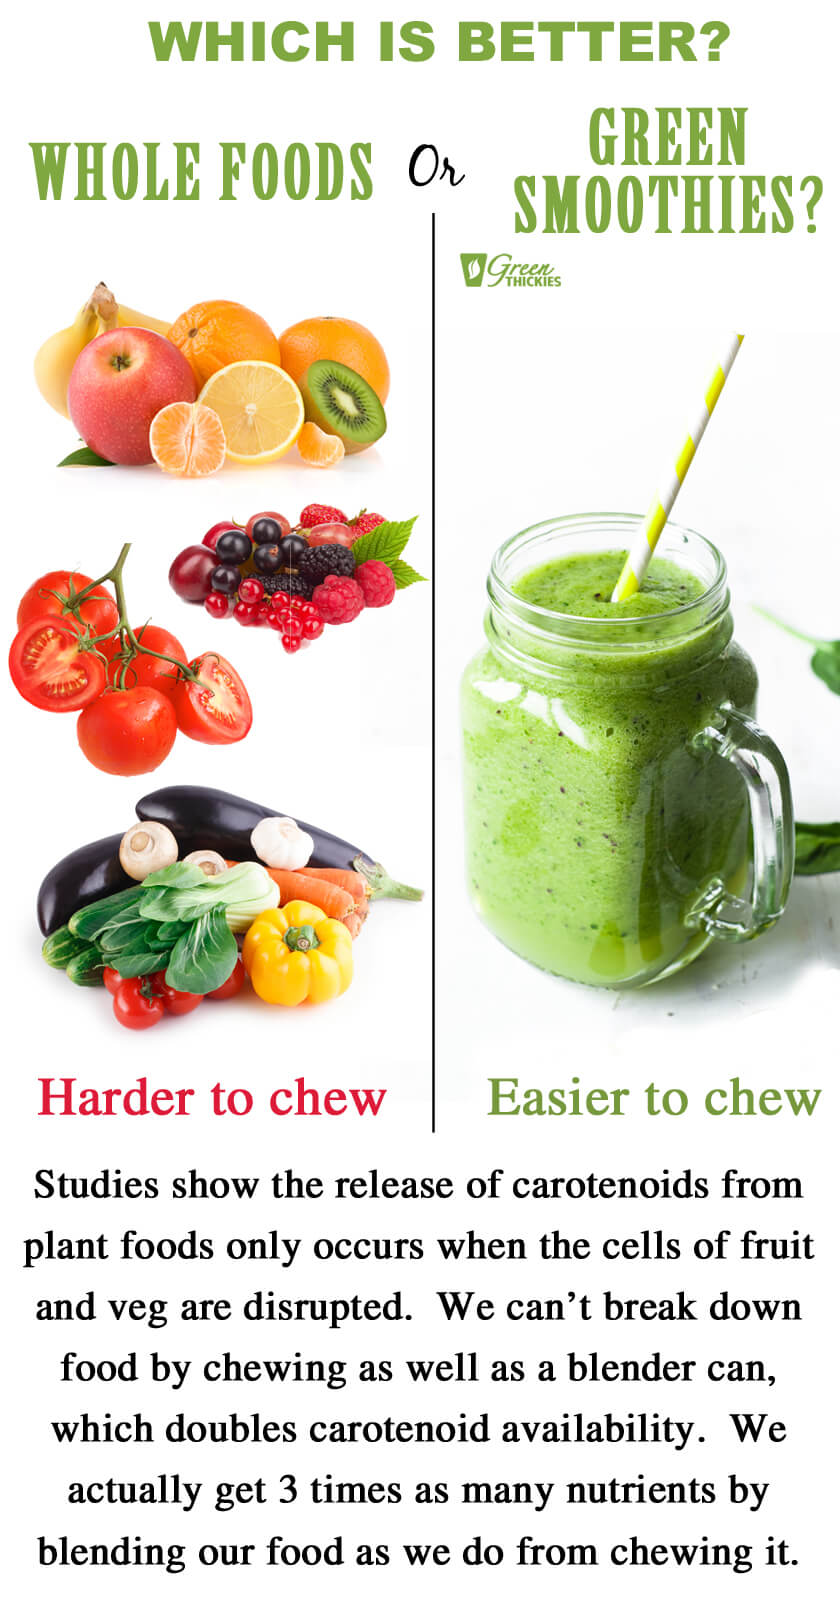 Which is better? Whole foods or green smoothies?